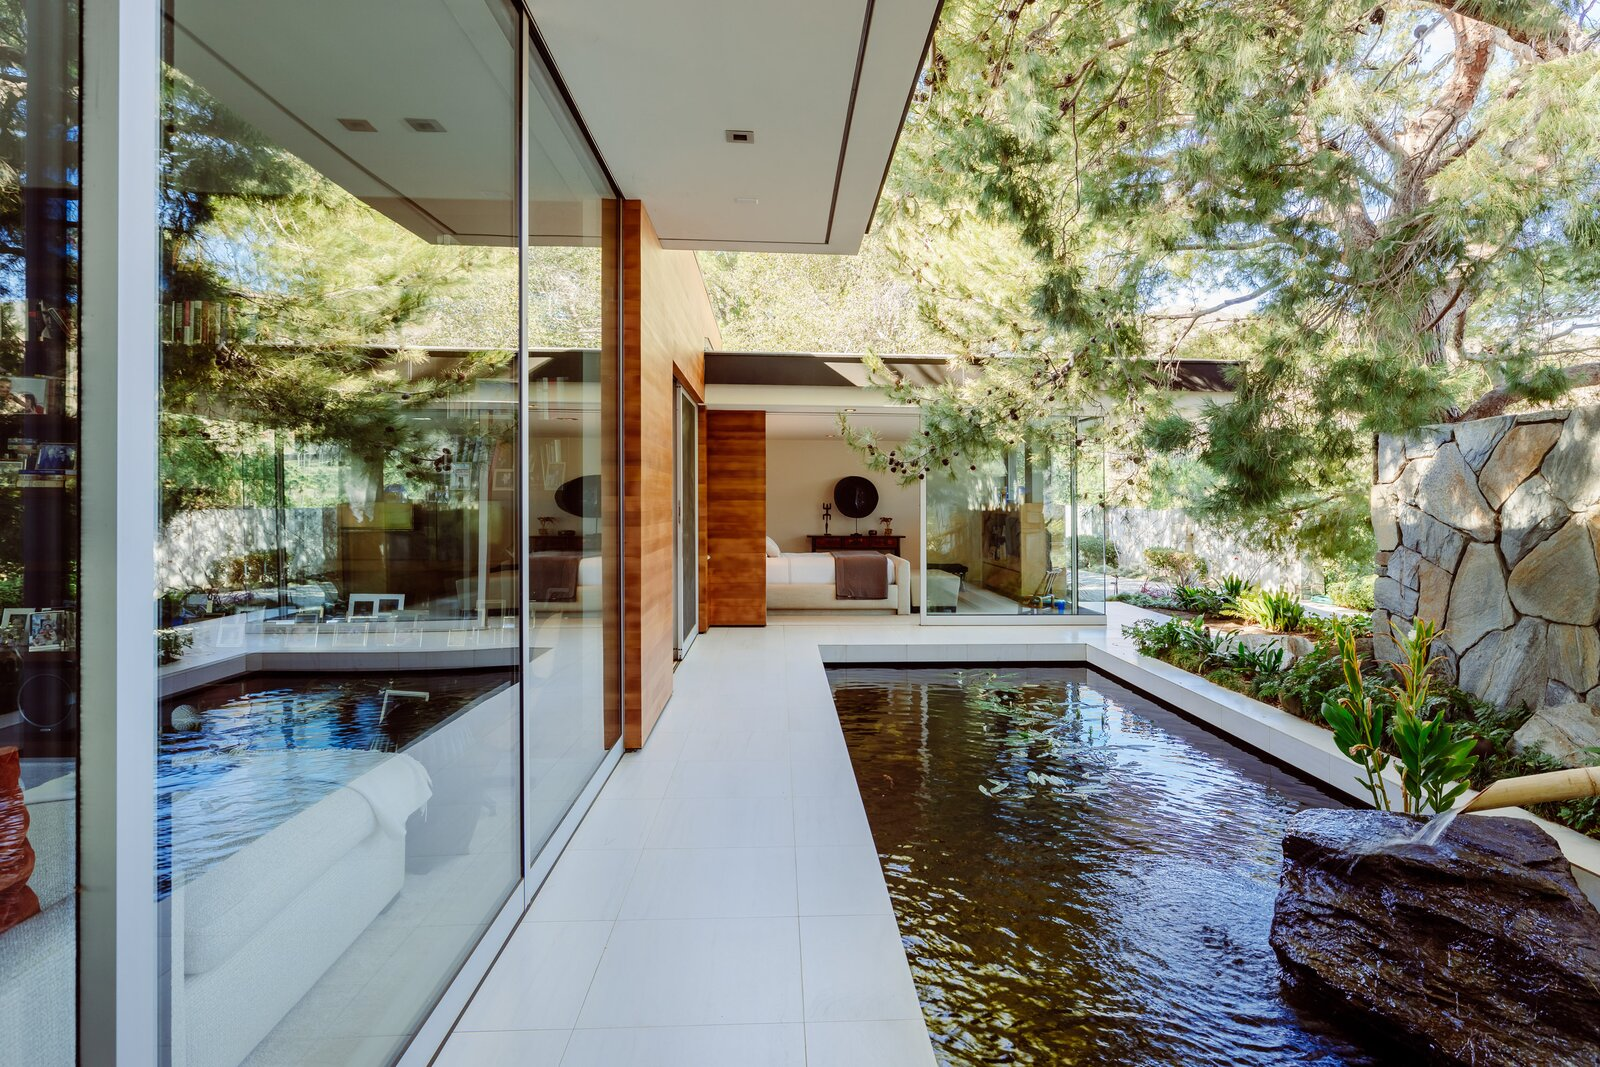 Backyard of Malibu Crest by Studio Bracket Architects